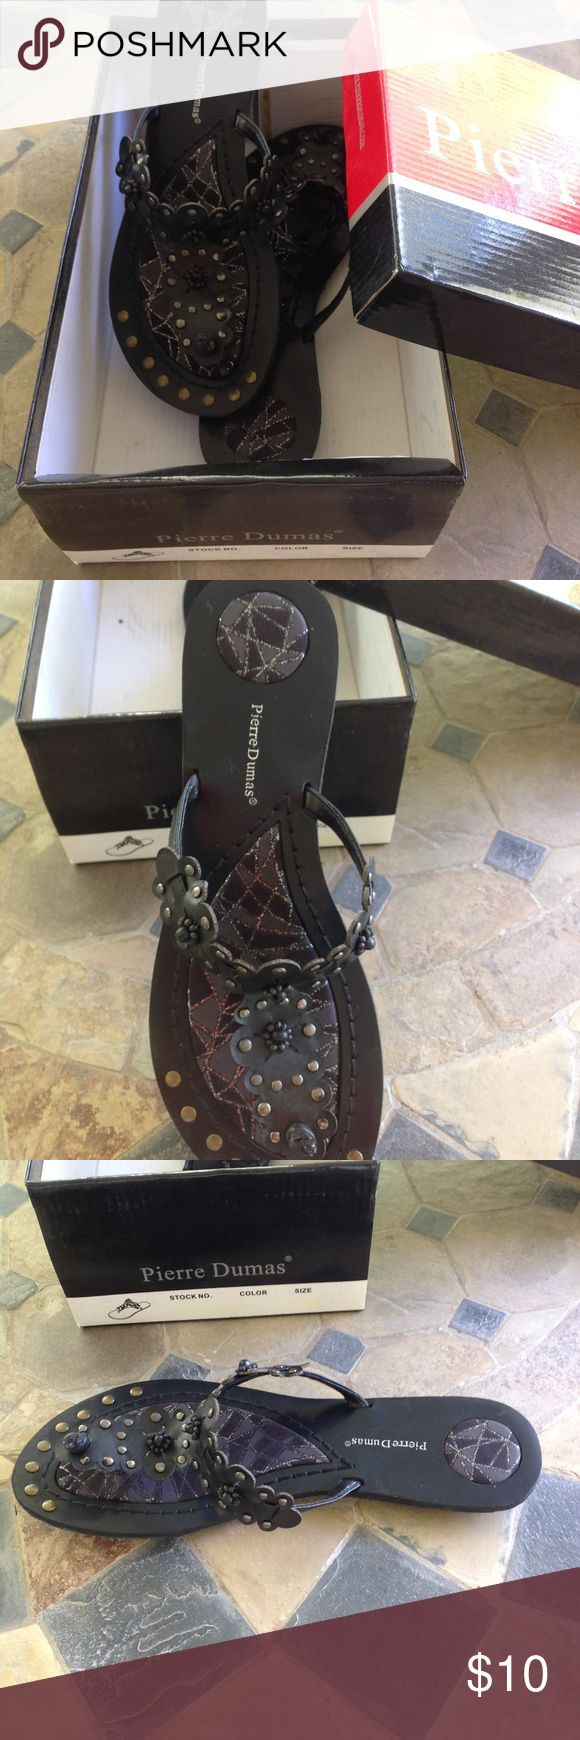 """Pierre Dumas """"Hayden"""" Black Sandals, Size 7 Woman's Black Sandals traction tread by Pierre Dumas """"Hayden"""" Pre-Owned with Box - cleaning out the closet and would like somebody to enjoy these cute sandals. Size 7 Pierre Dumas Shoes Sandals"""